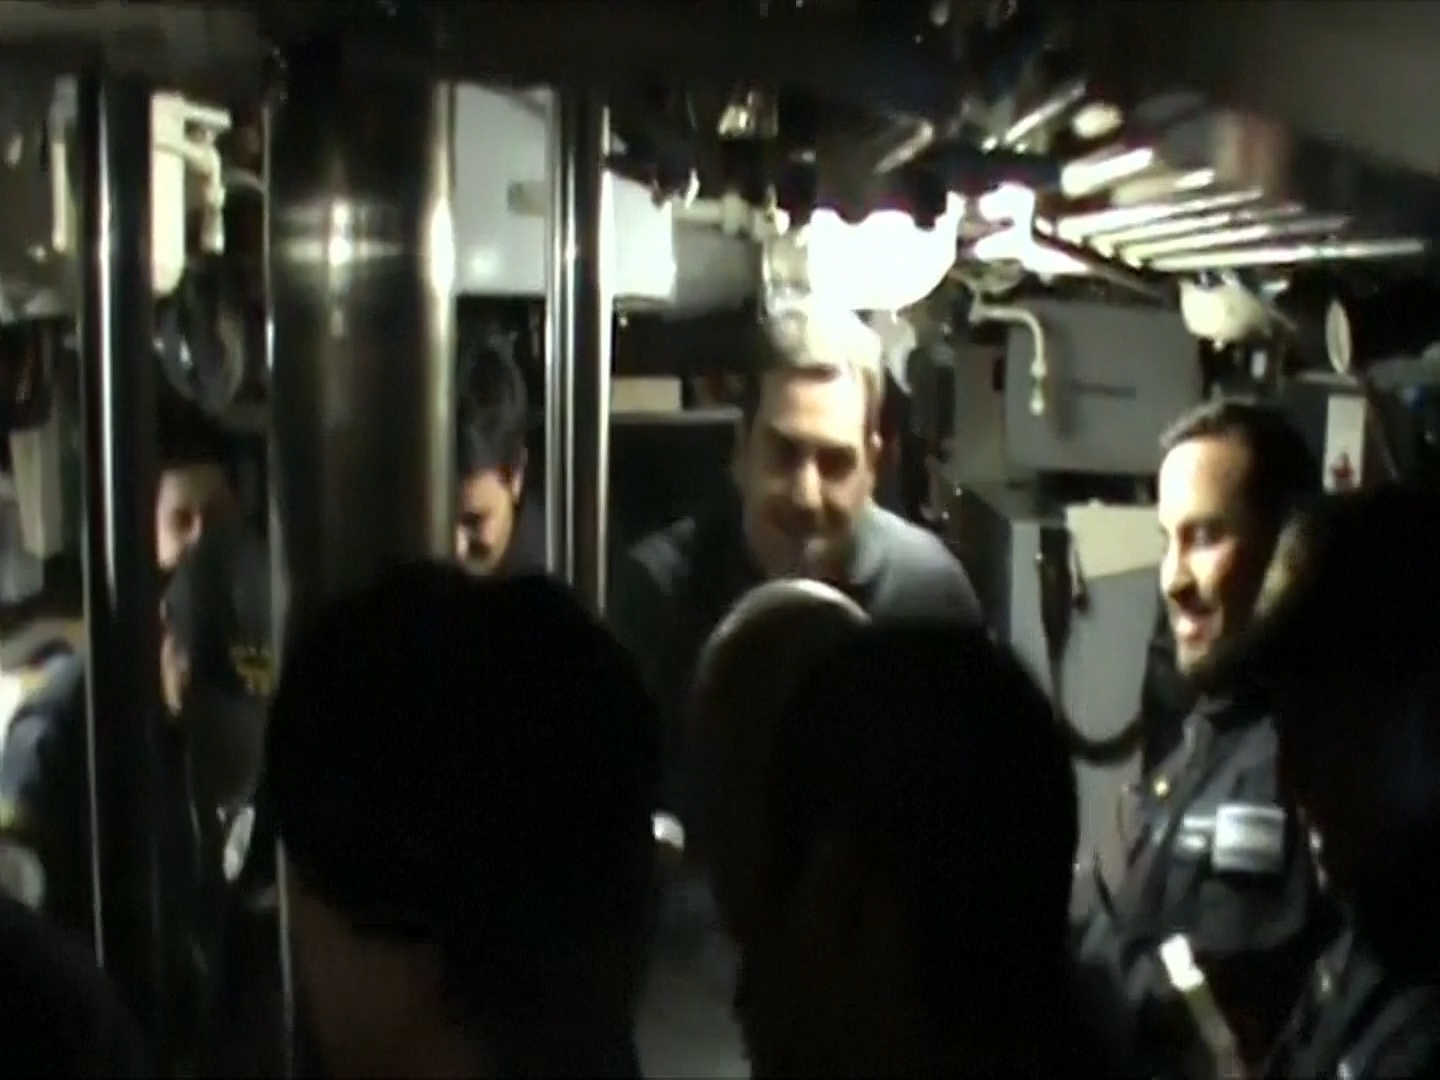 Watch Moment Crew Of Missing Argentine Submarine Celebrate Its Return To Service In 2014